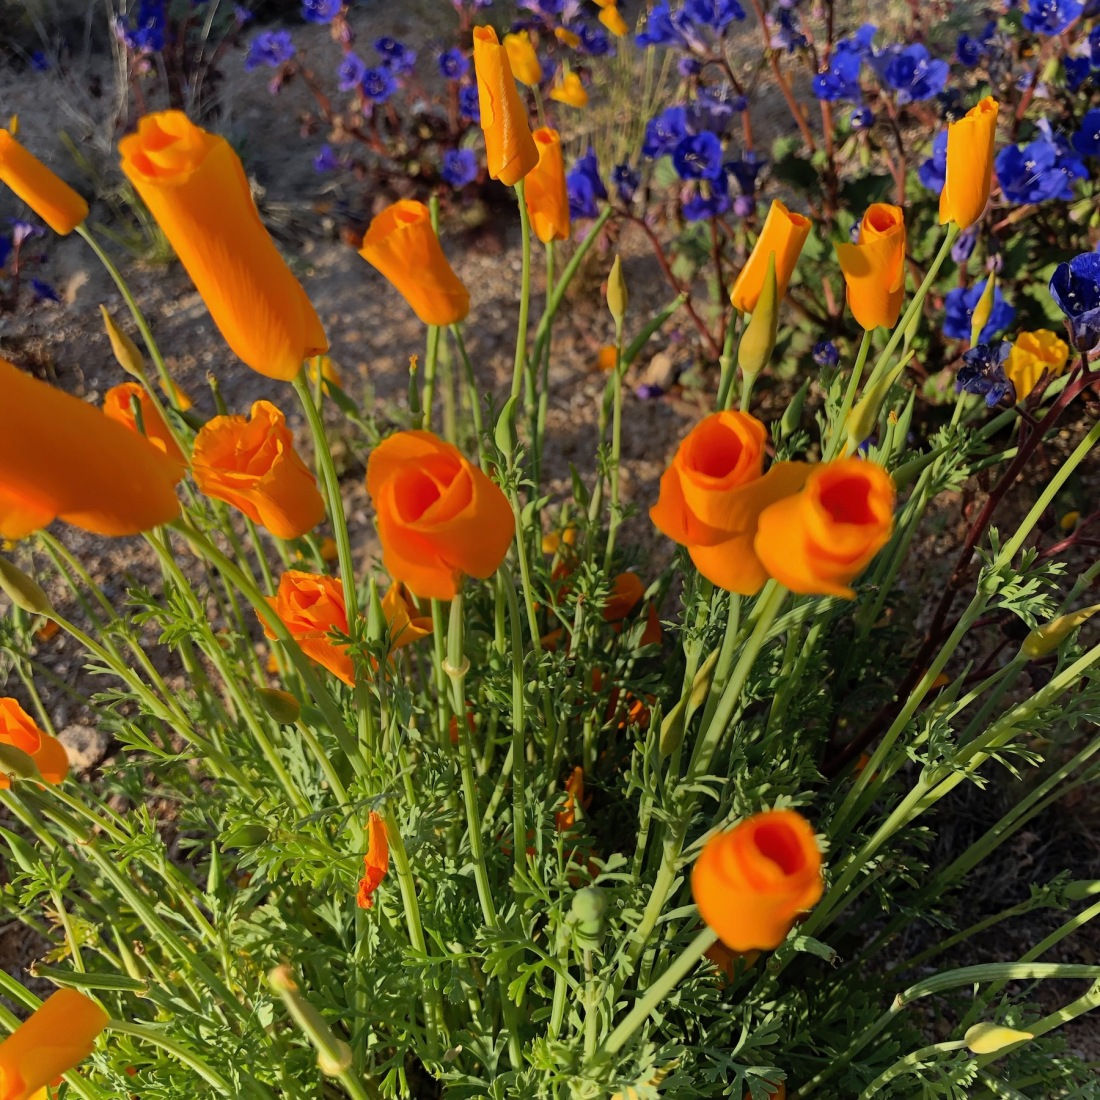 Poppies near sunset, Tangerine Sky Park, Arizona